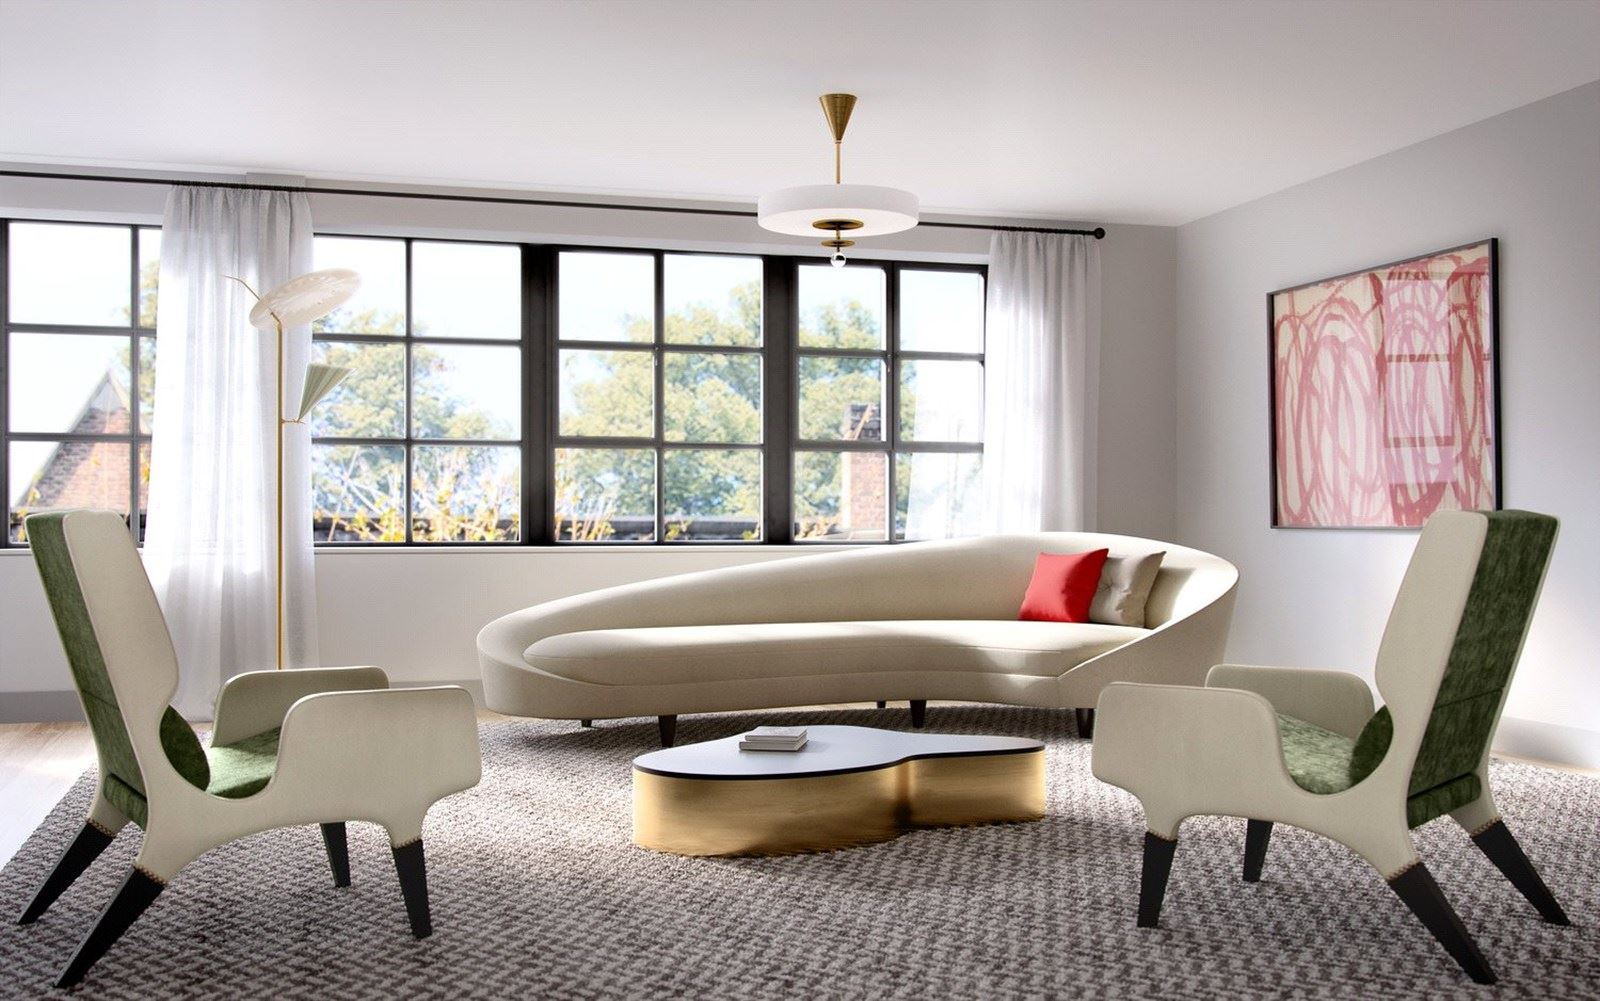 Architectural furniture with clean, sweeping lines should be the focus of your Scandinavian living room.